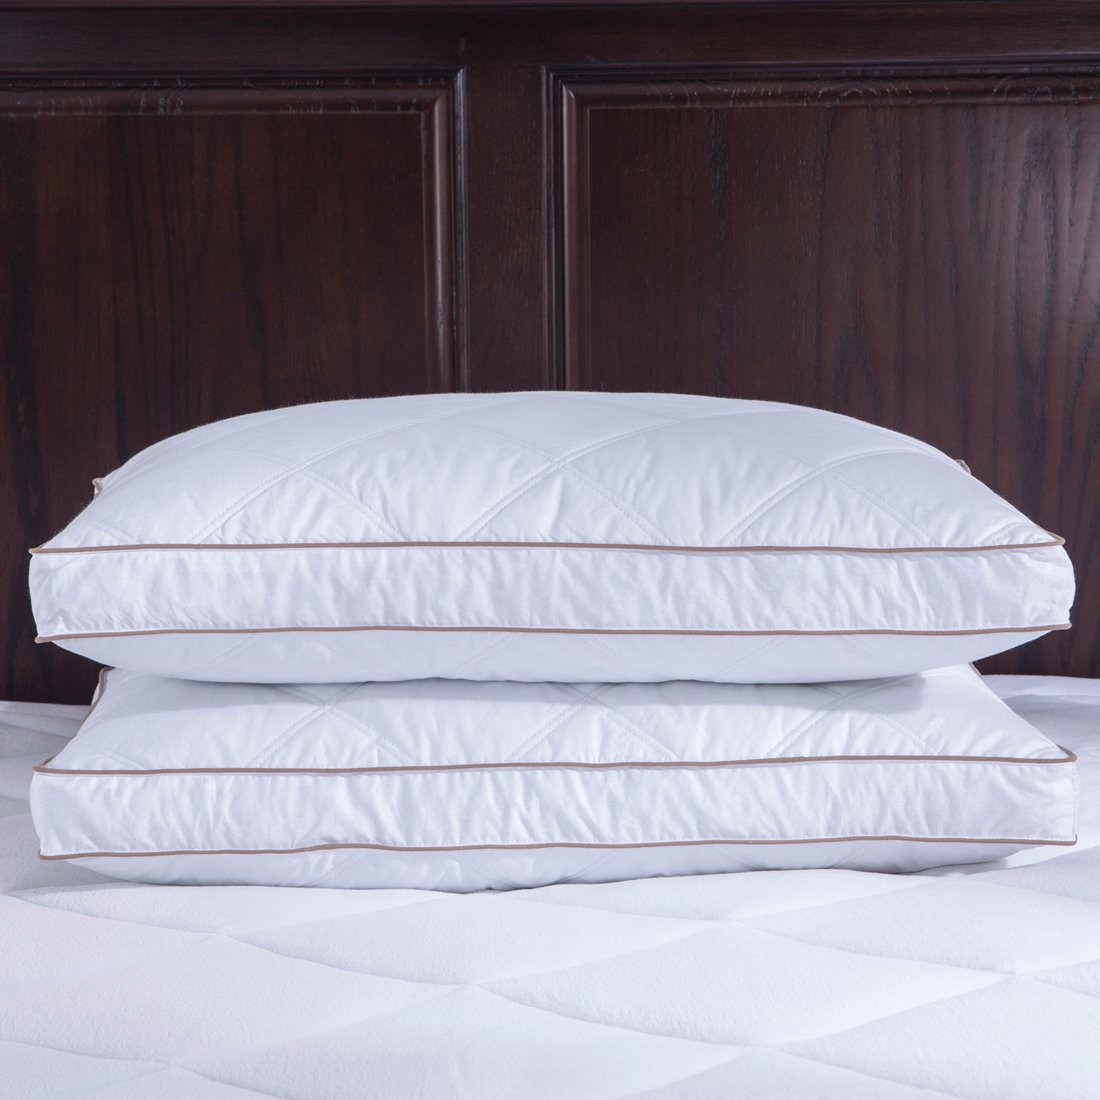 Queen Size Bed Pillows Set Of 2 Goose Down Feather Pillow